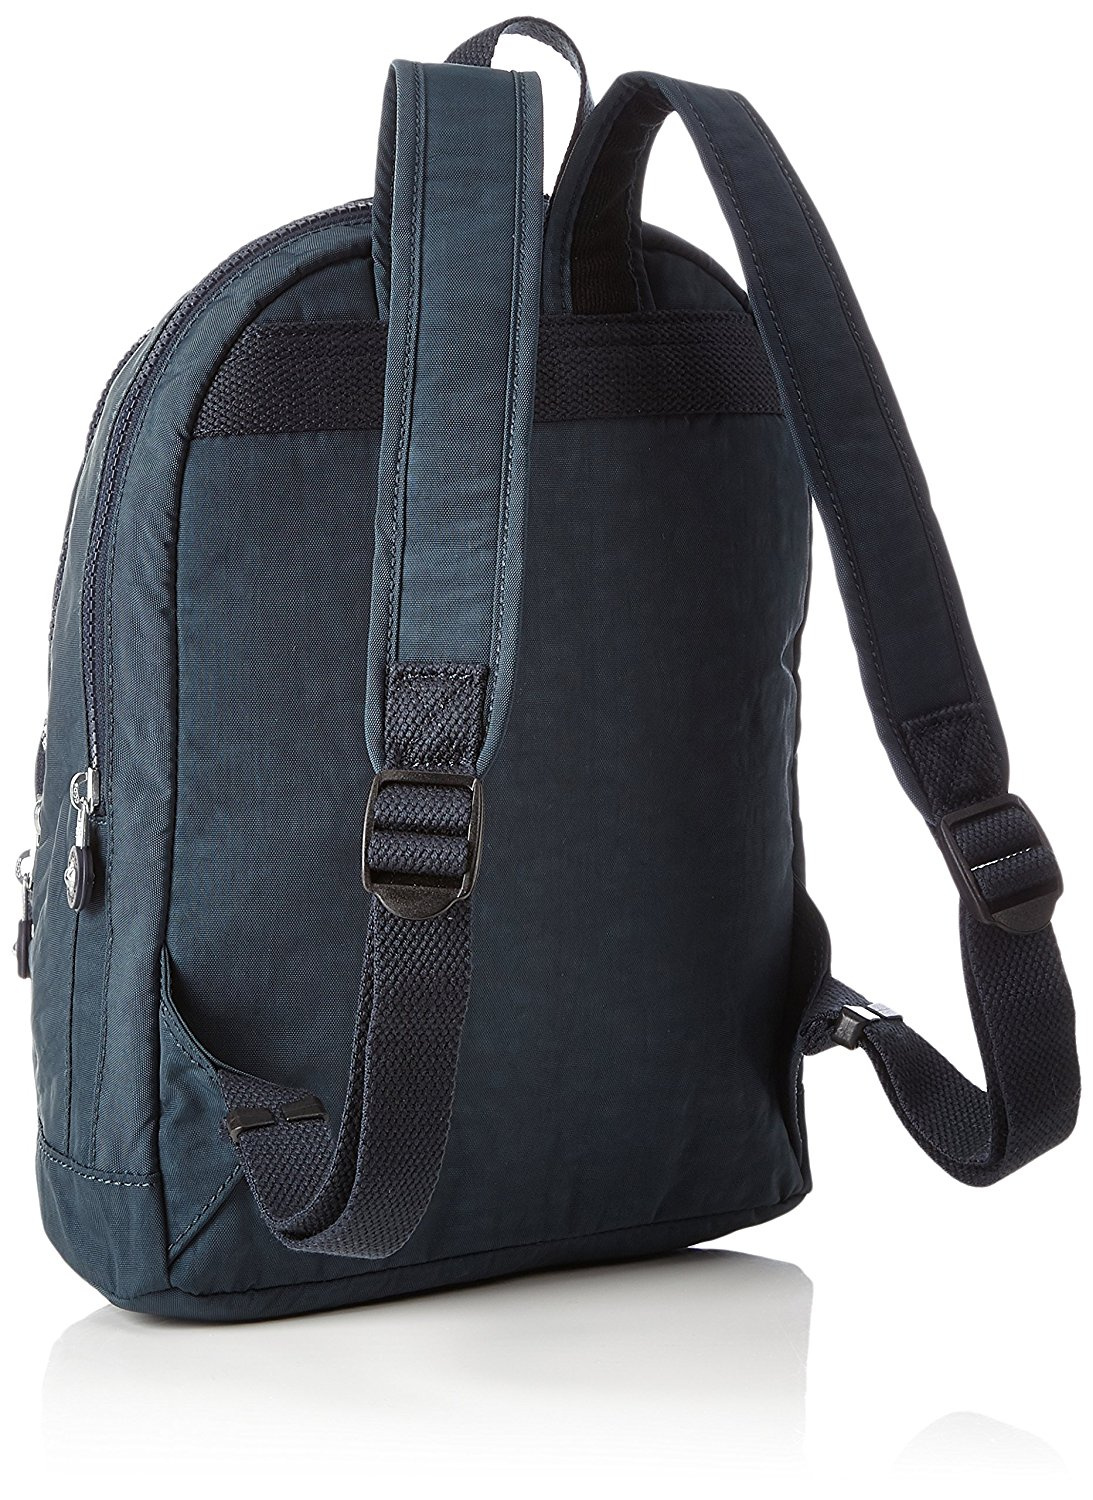 Kipling Manary Backpack With Laptop Protection - CEAGESP fd9f79099107